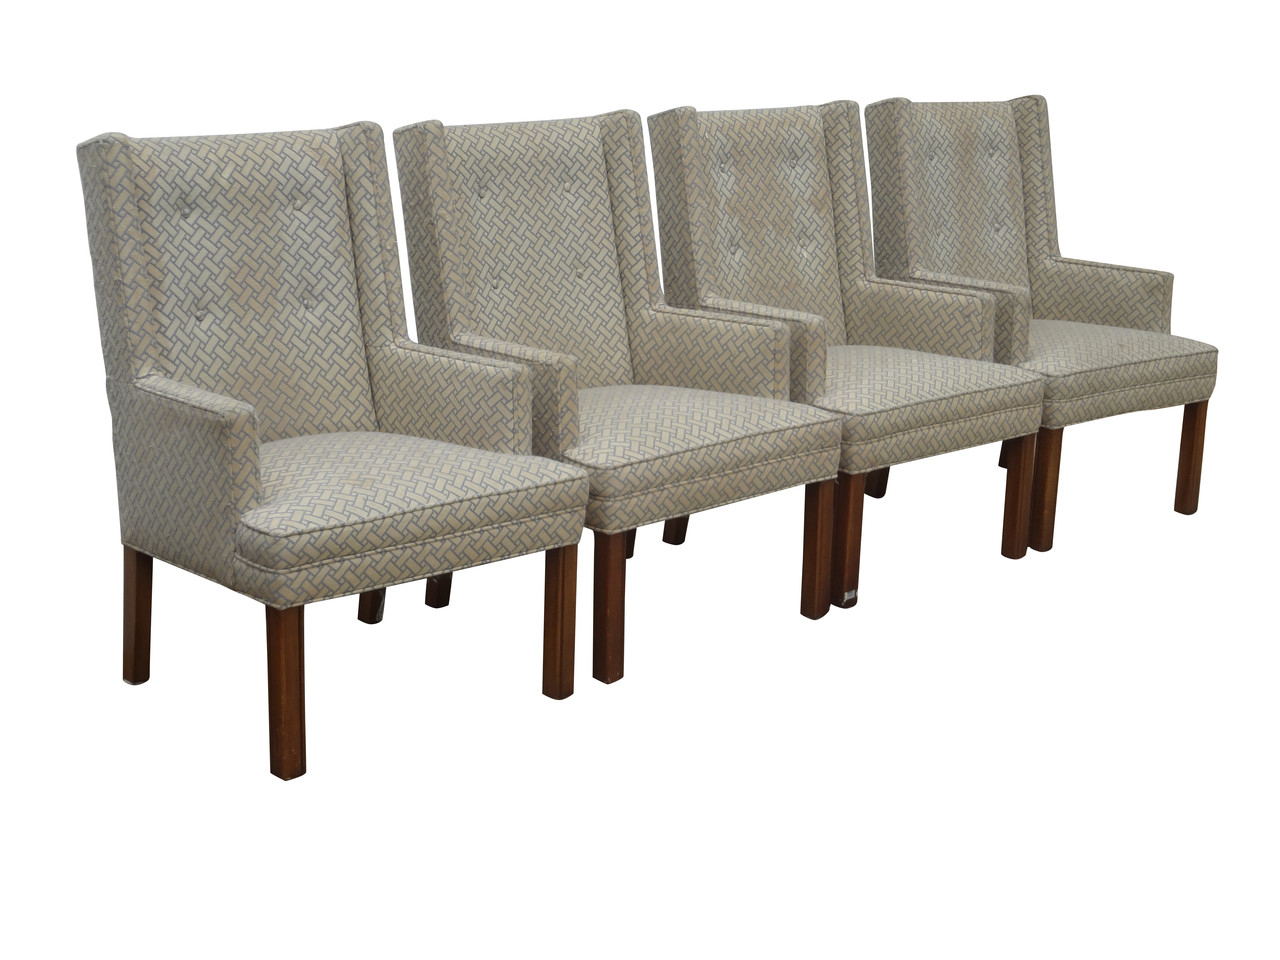 2019 S/4 John Widdicomb Parsons Dining Chairs - Nueve- Grand Rapids for John 4 Piece Dining Sets